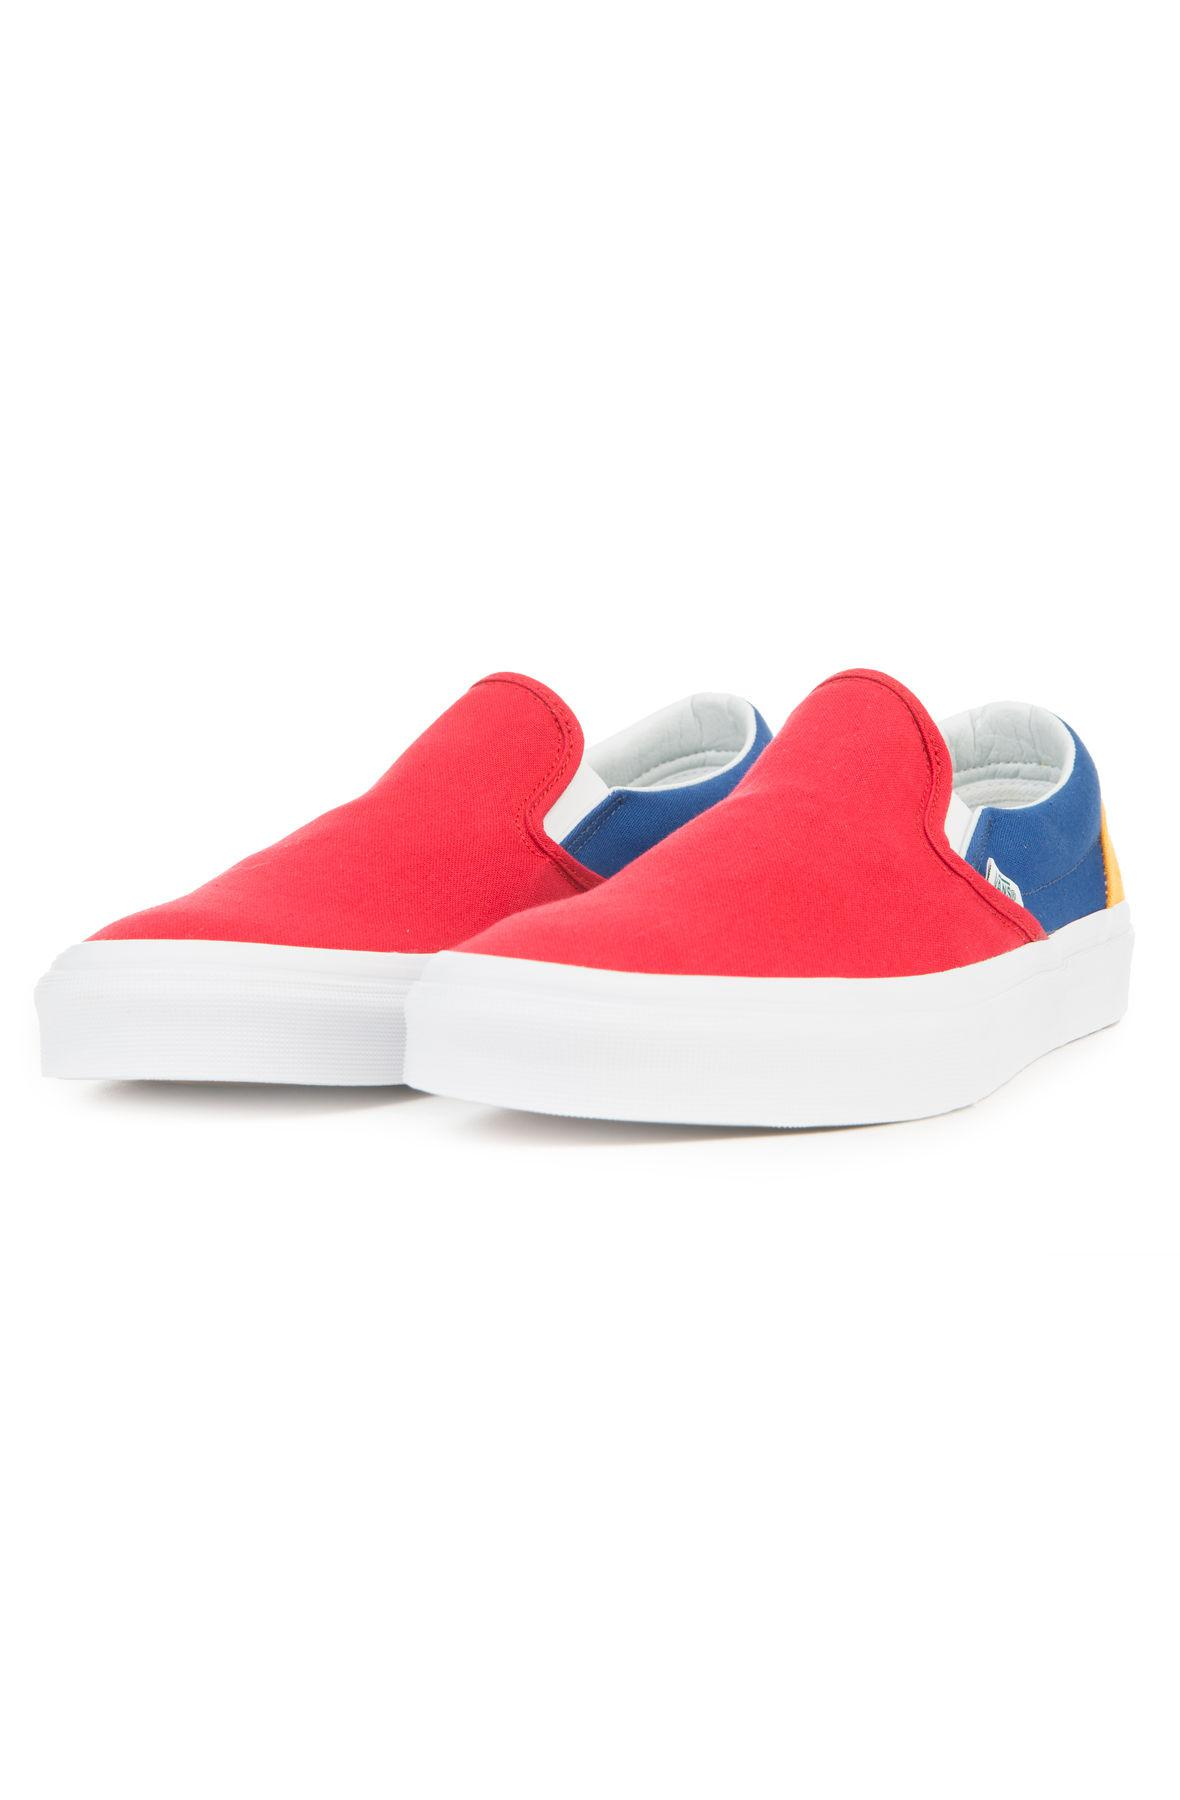 Lyst - Vans The Men s Classic Slip-on In Yacht Club Red  Blue And ... 008a0c1e9